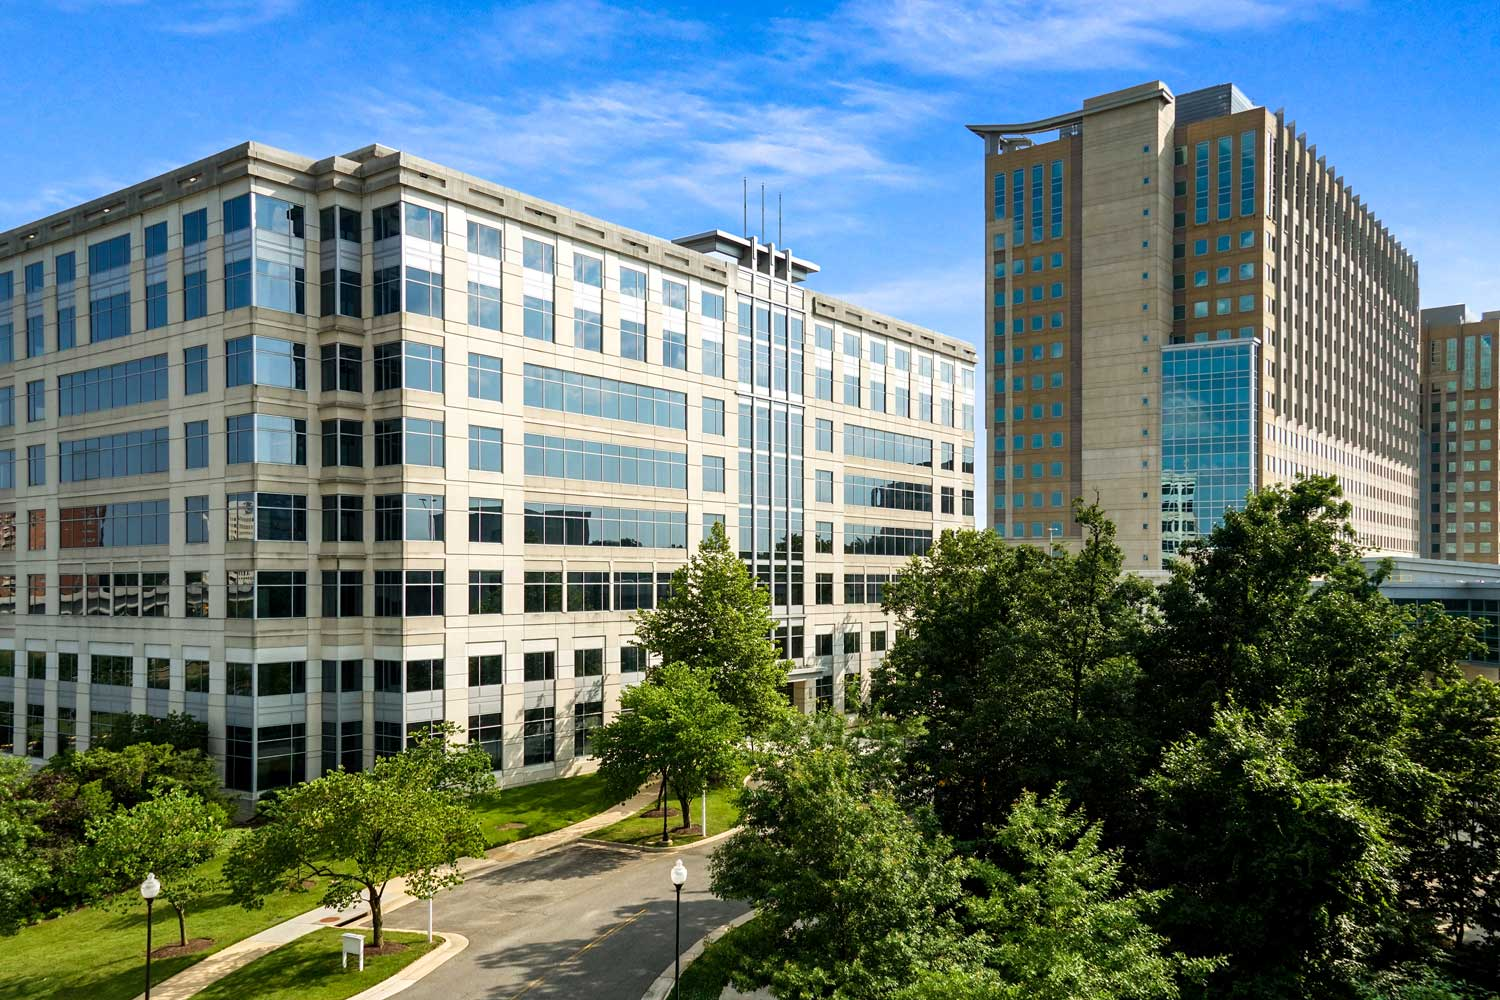 DoD Mark Center is 7 minutes from Barcroft View Apartments in Falls Church, VA